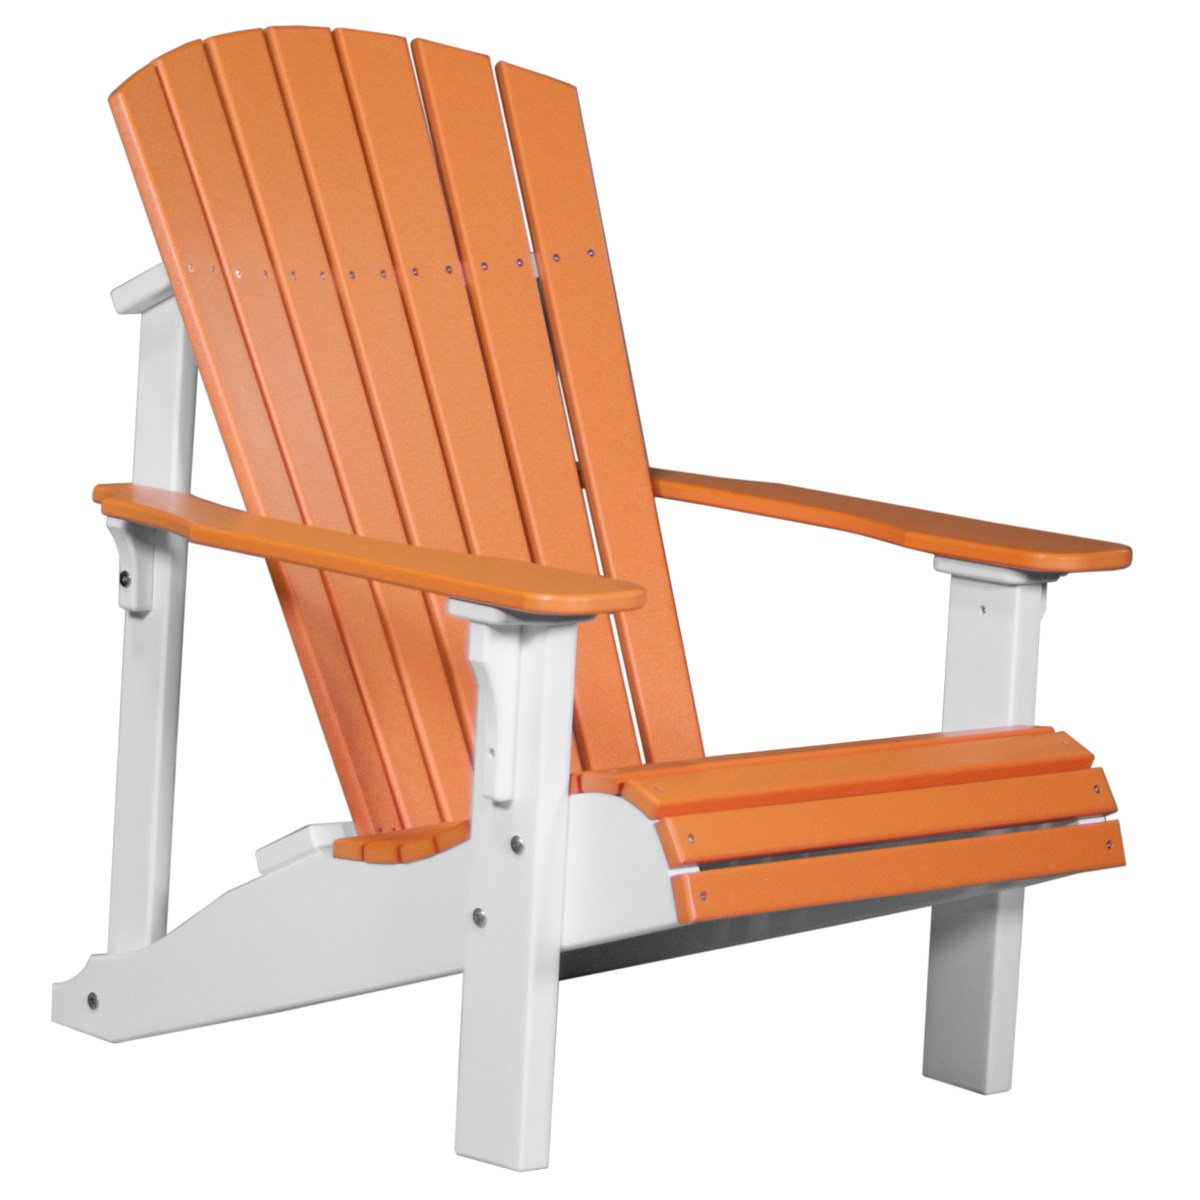 non wood adirondack chairs patio clearance deluxe chair recycled fine oak things